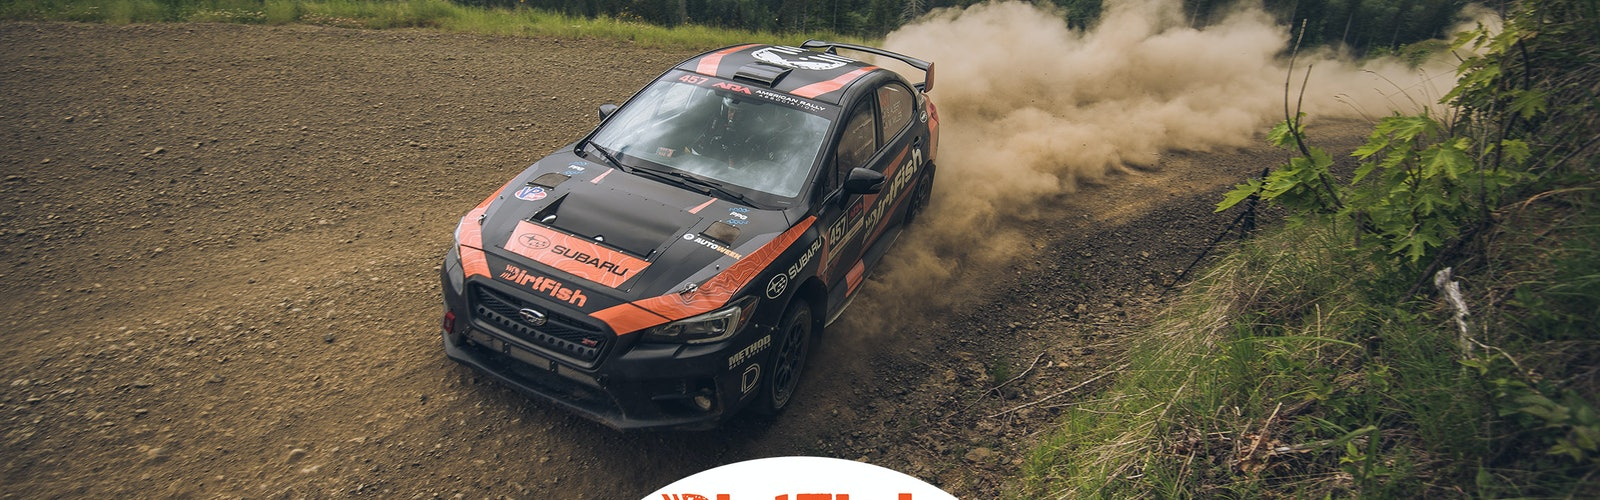 DirtFish-Olympus-Rally-2019-2